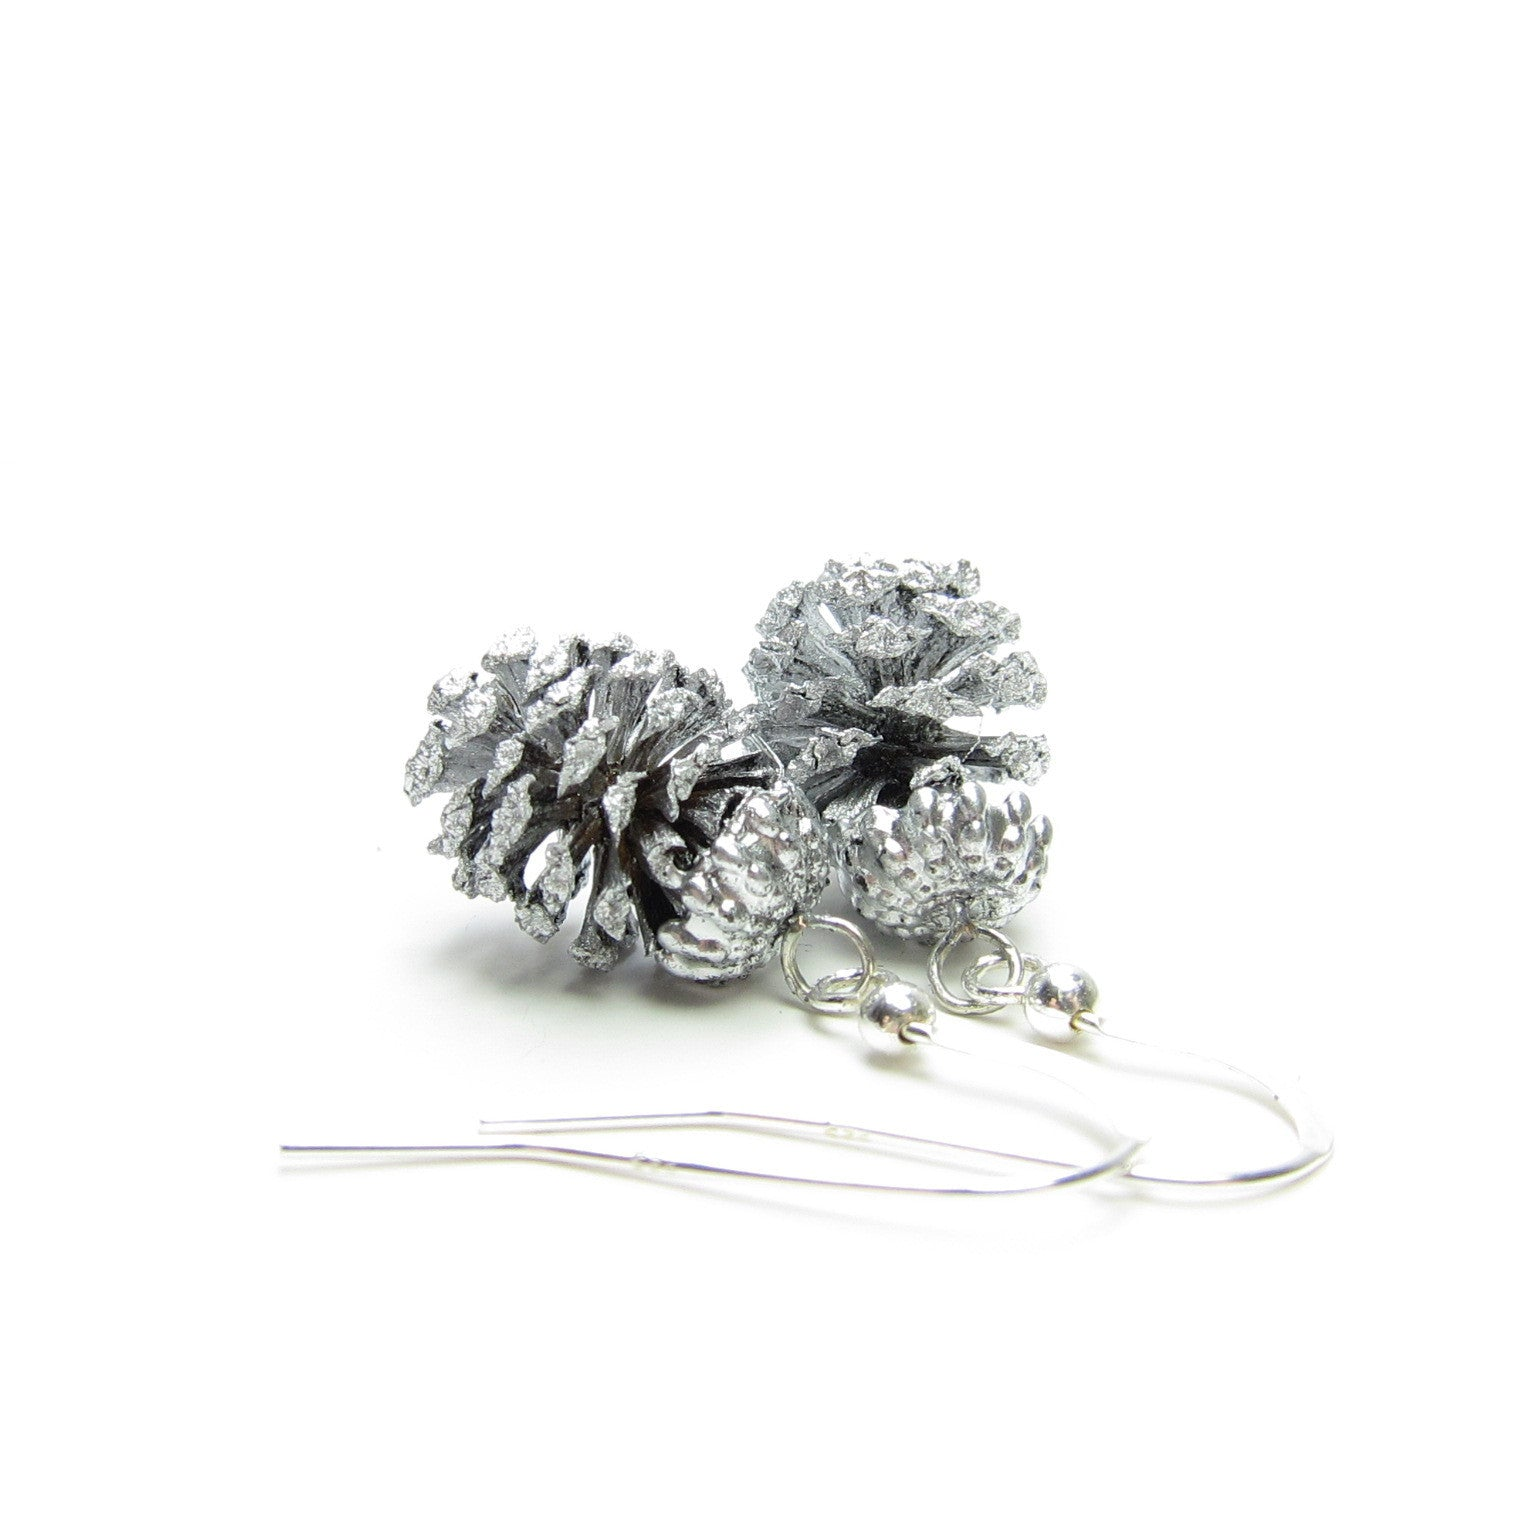 Silver pine cone earrings made from real pine cones